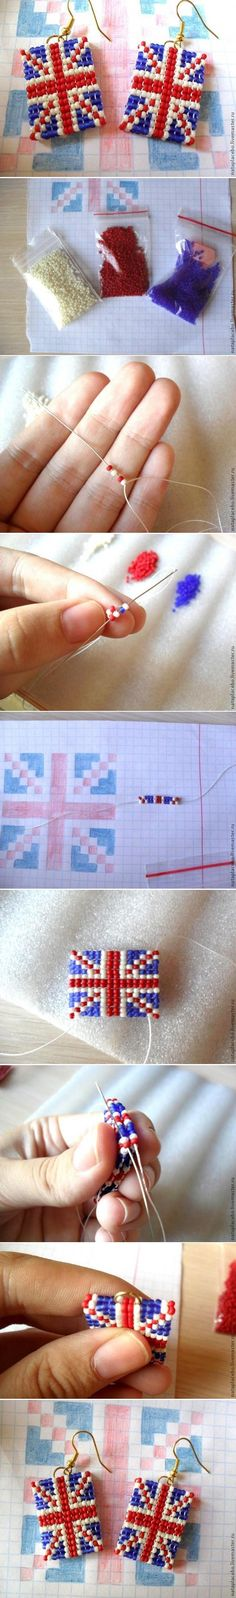 DIY Bead Earrings Union Jack   Want to try creating an ATM design to use as a pendant for a necklace.